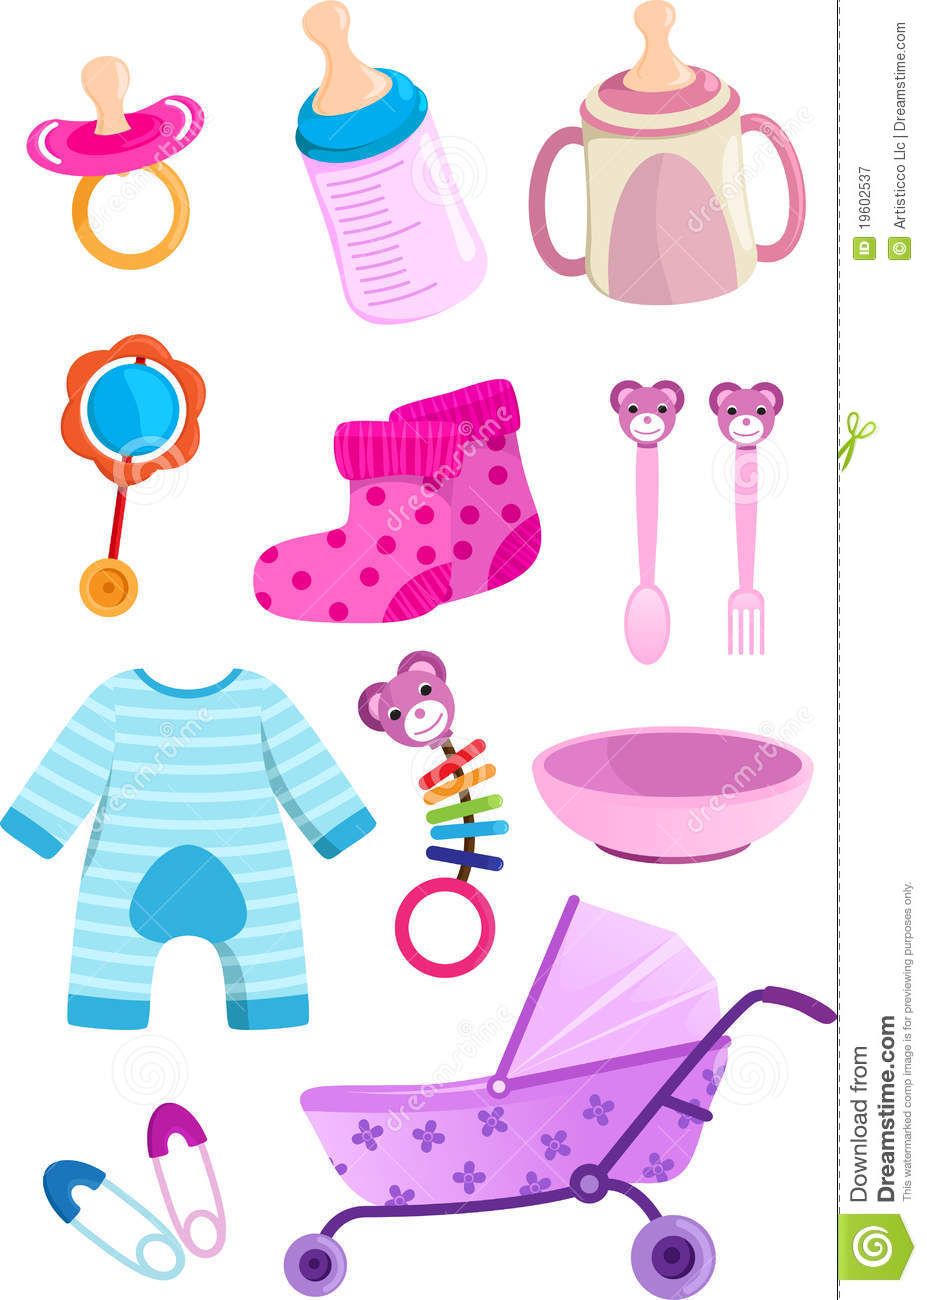 Baby Items Royalty Free Stock Photography  Image: 19602537